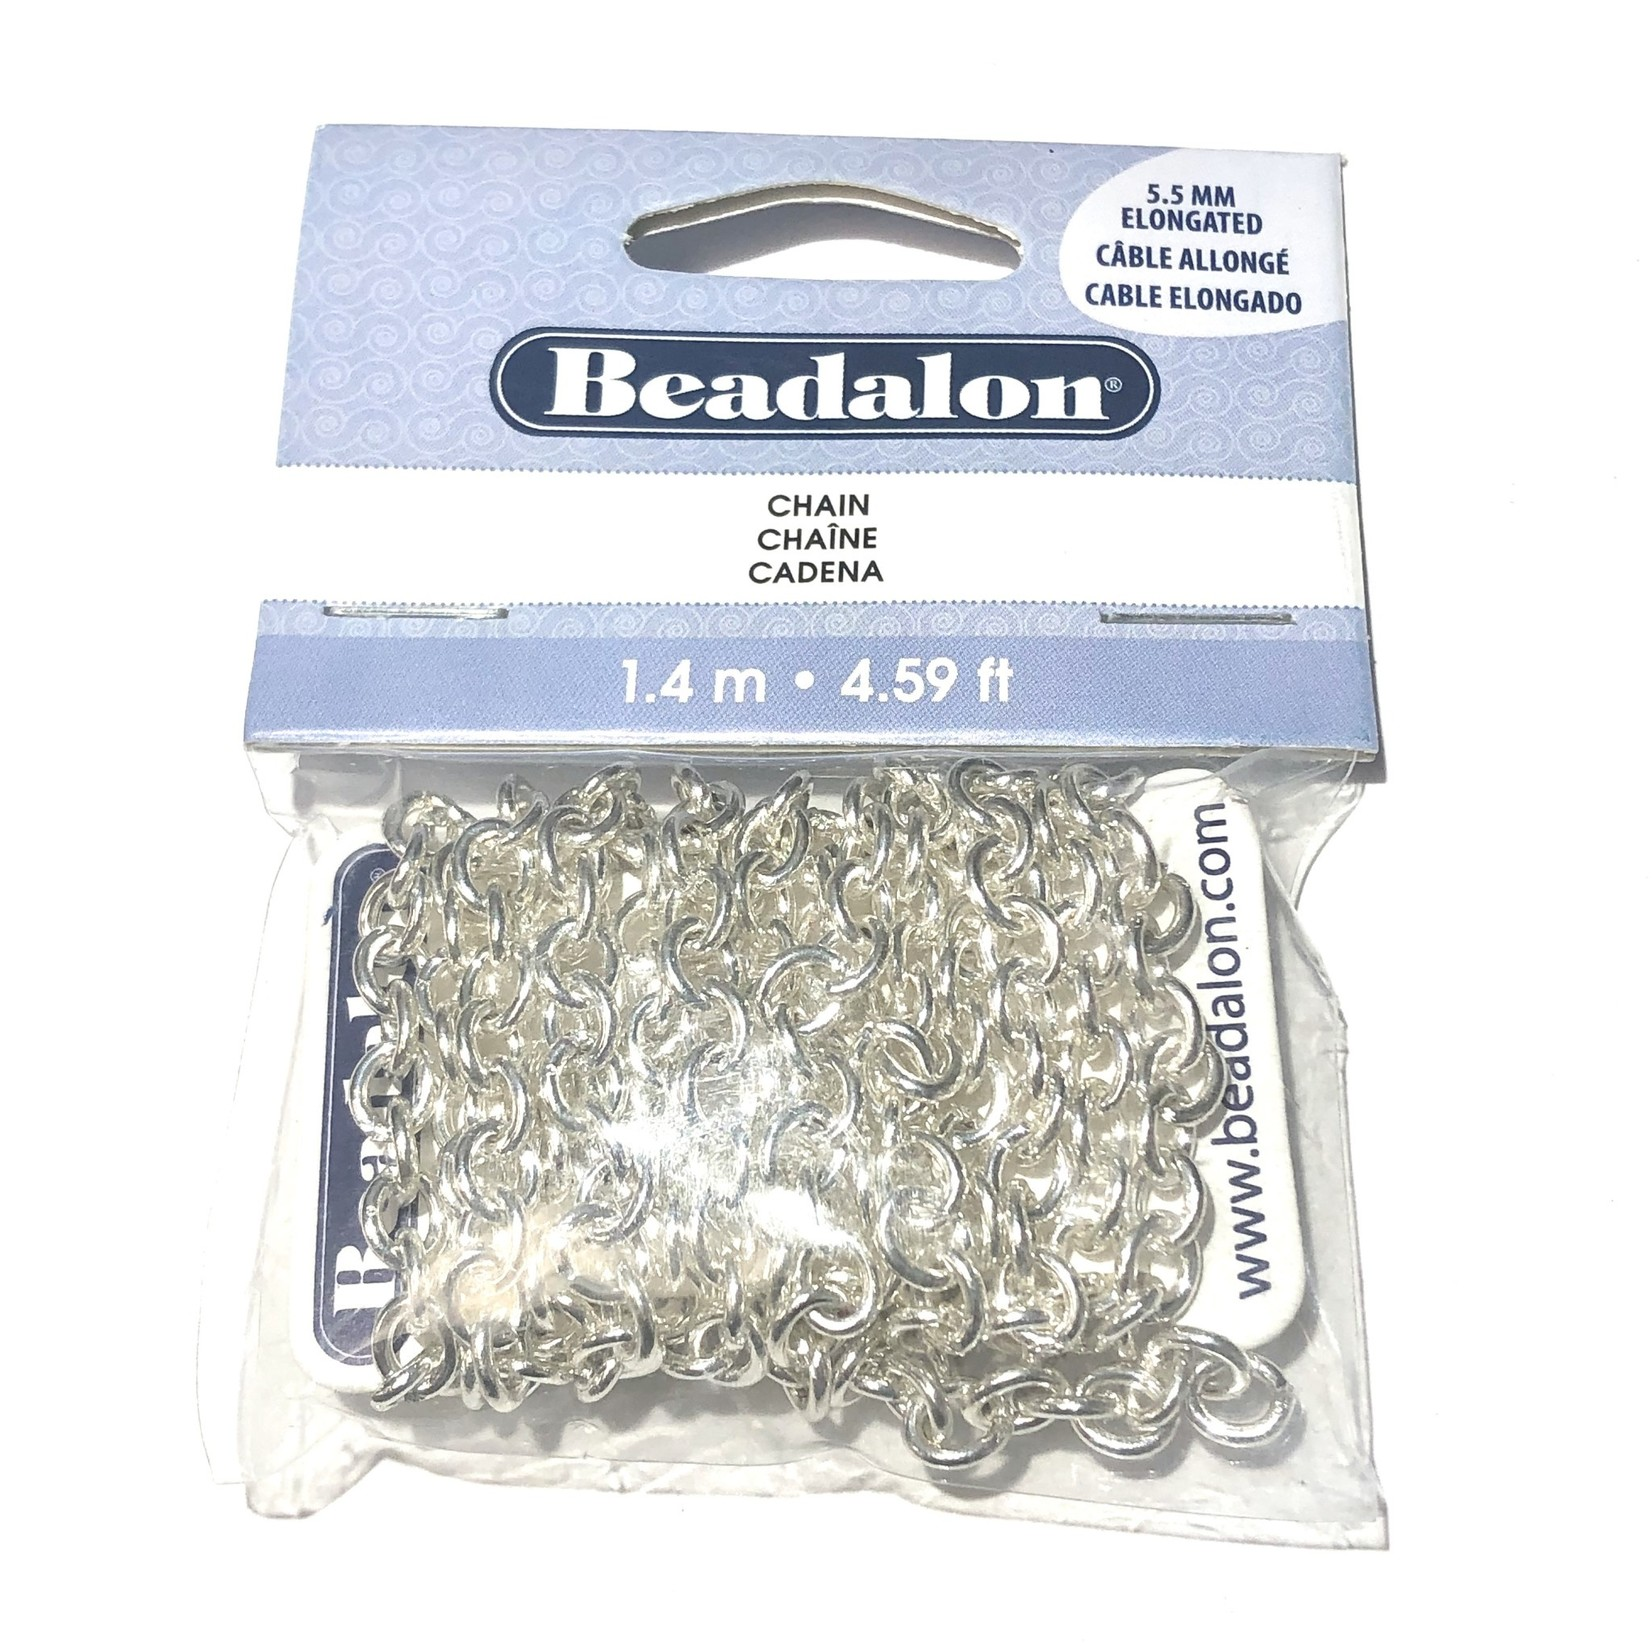 Beadalon Elongated Chain 5.5mm Silver Plated 1.4m